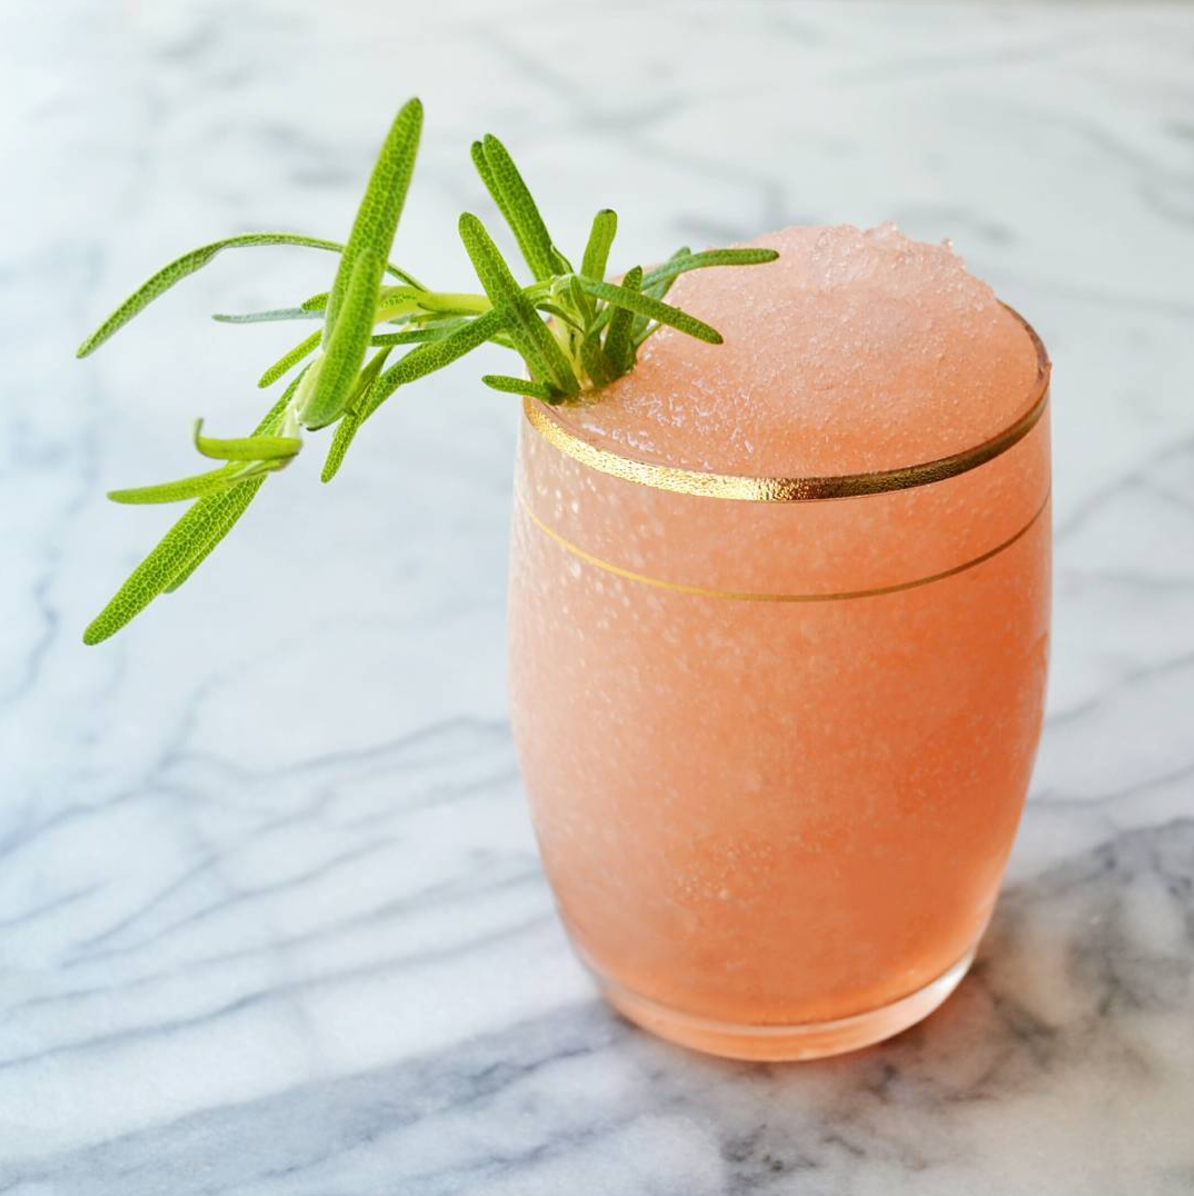 Frosé mary    1 bottle of rosé   Ice   3 oz strawberry simple syrup     3 oz freshly-squeezed lemon juice   Fresh rosemary garnish